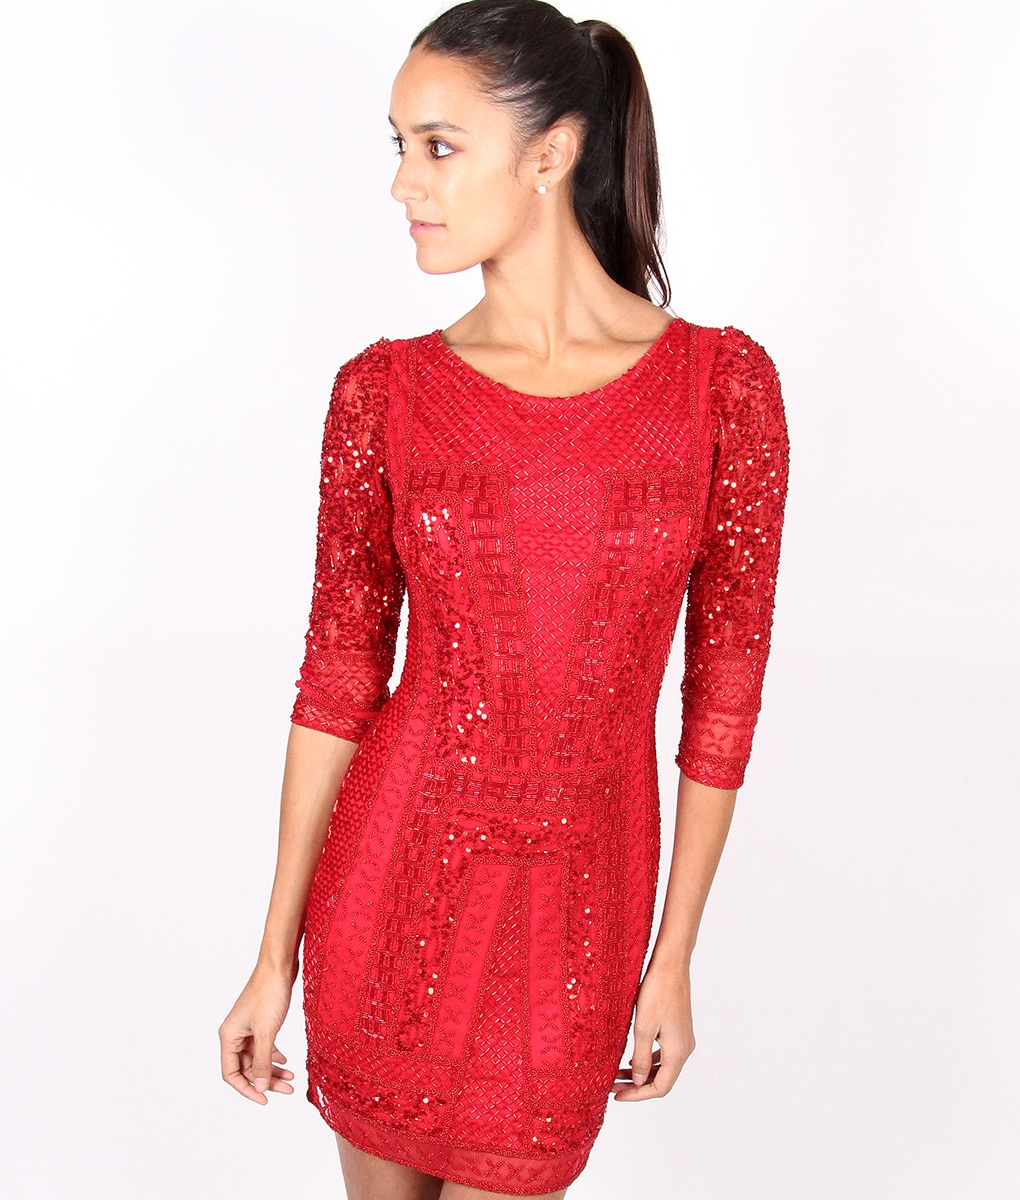 Alila-Red-Long-sleeve-Sequin-dress-by-Scala